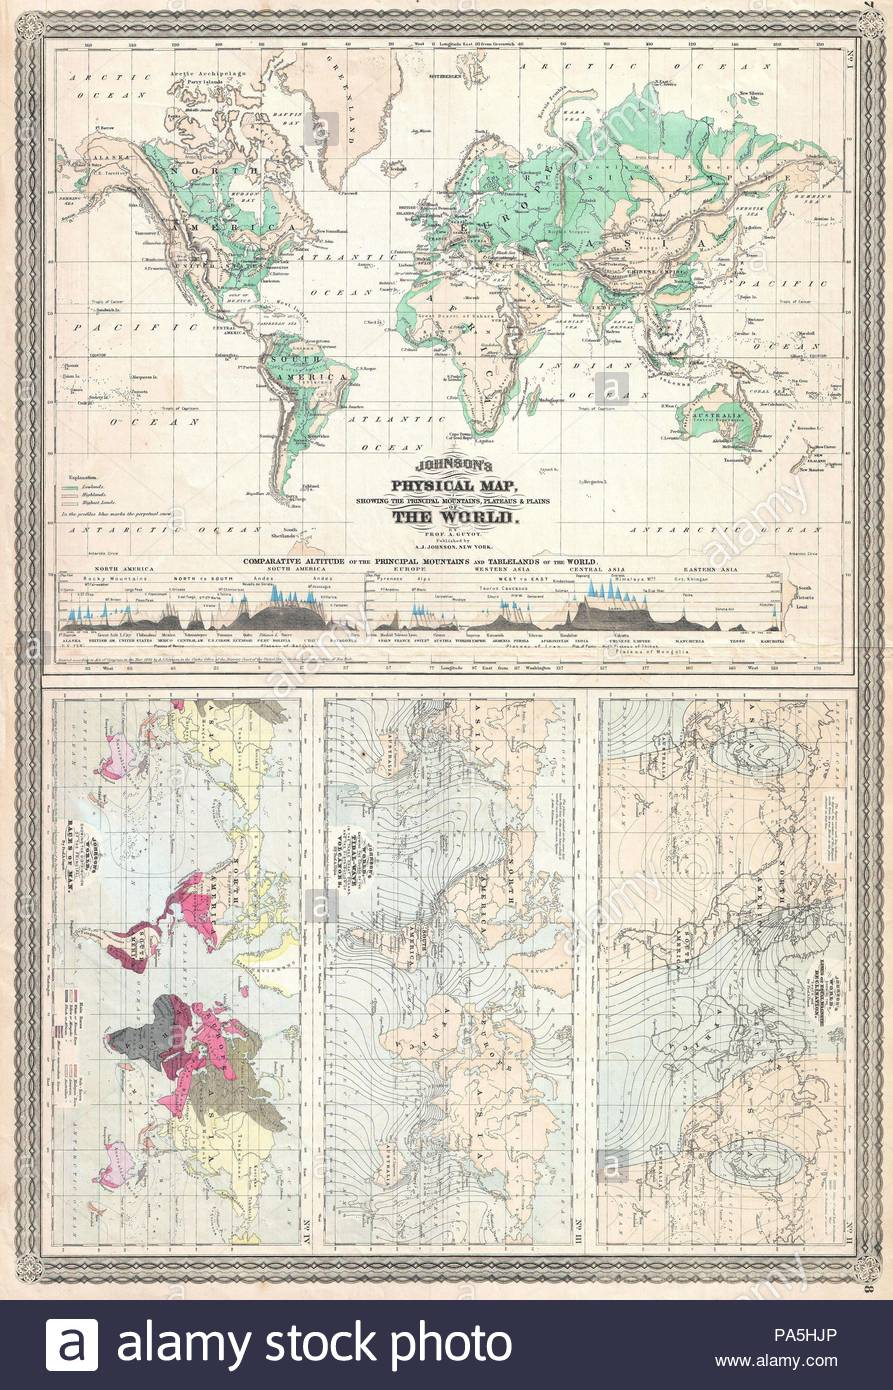 1870 Johnson Climate Map Of The World W Physical Map Tidal Map